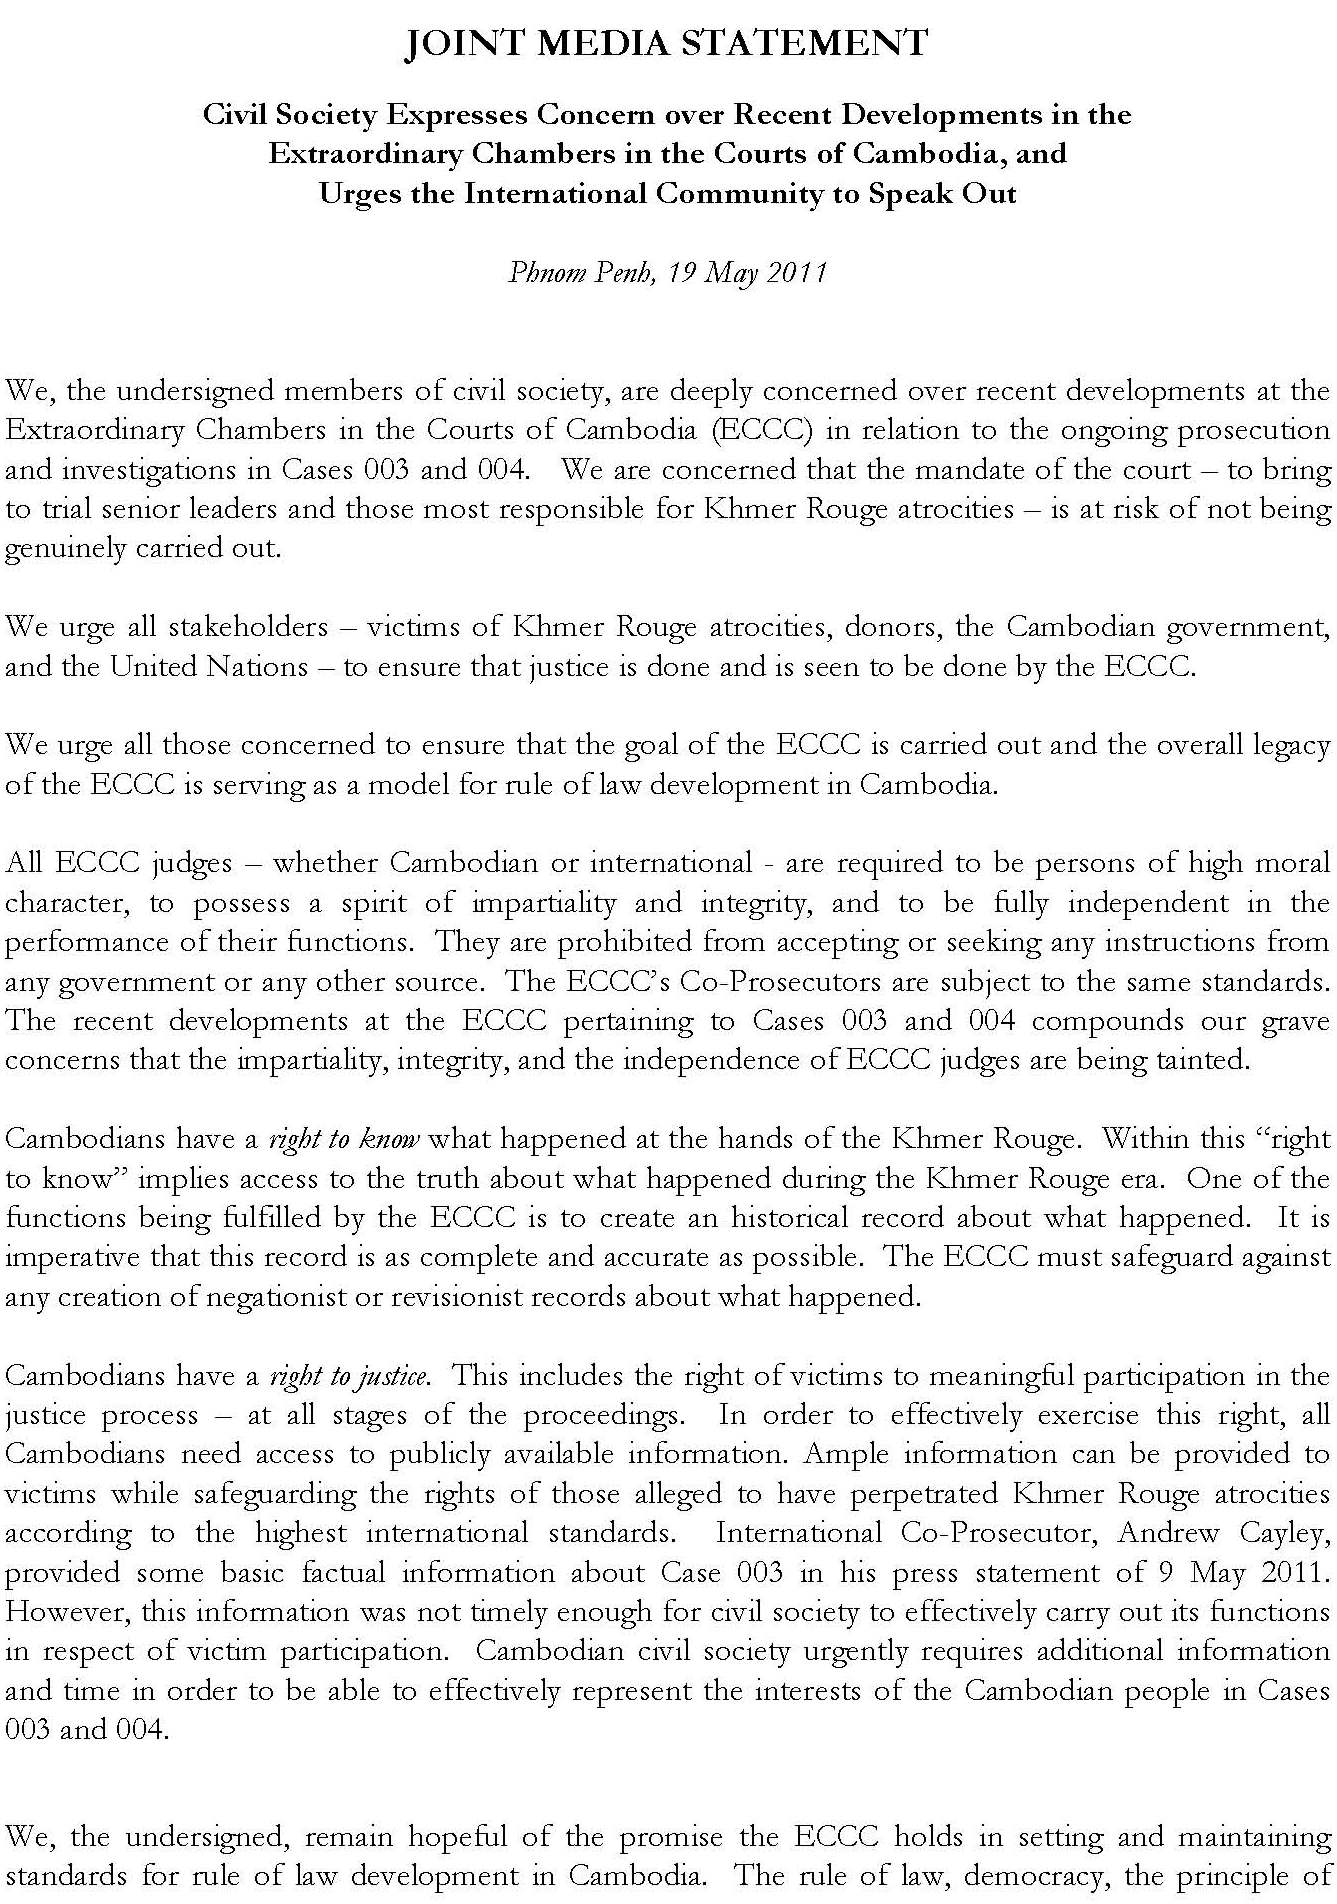 Joint Media Statement, 19 May 2011